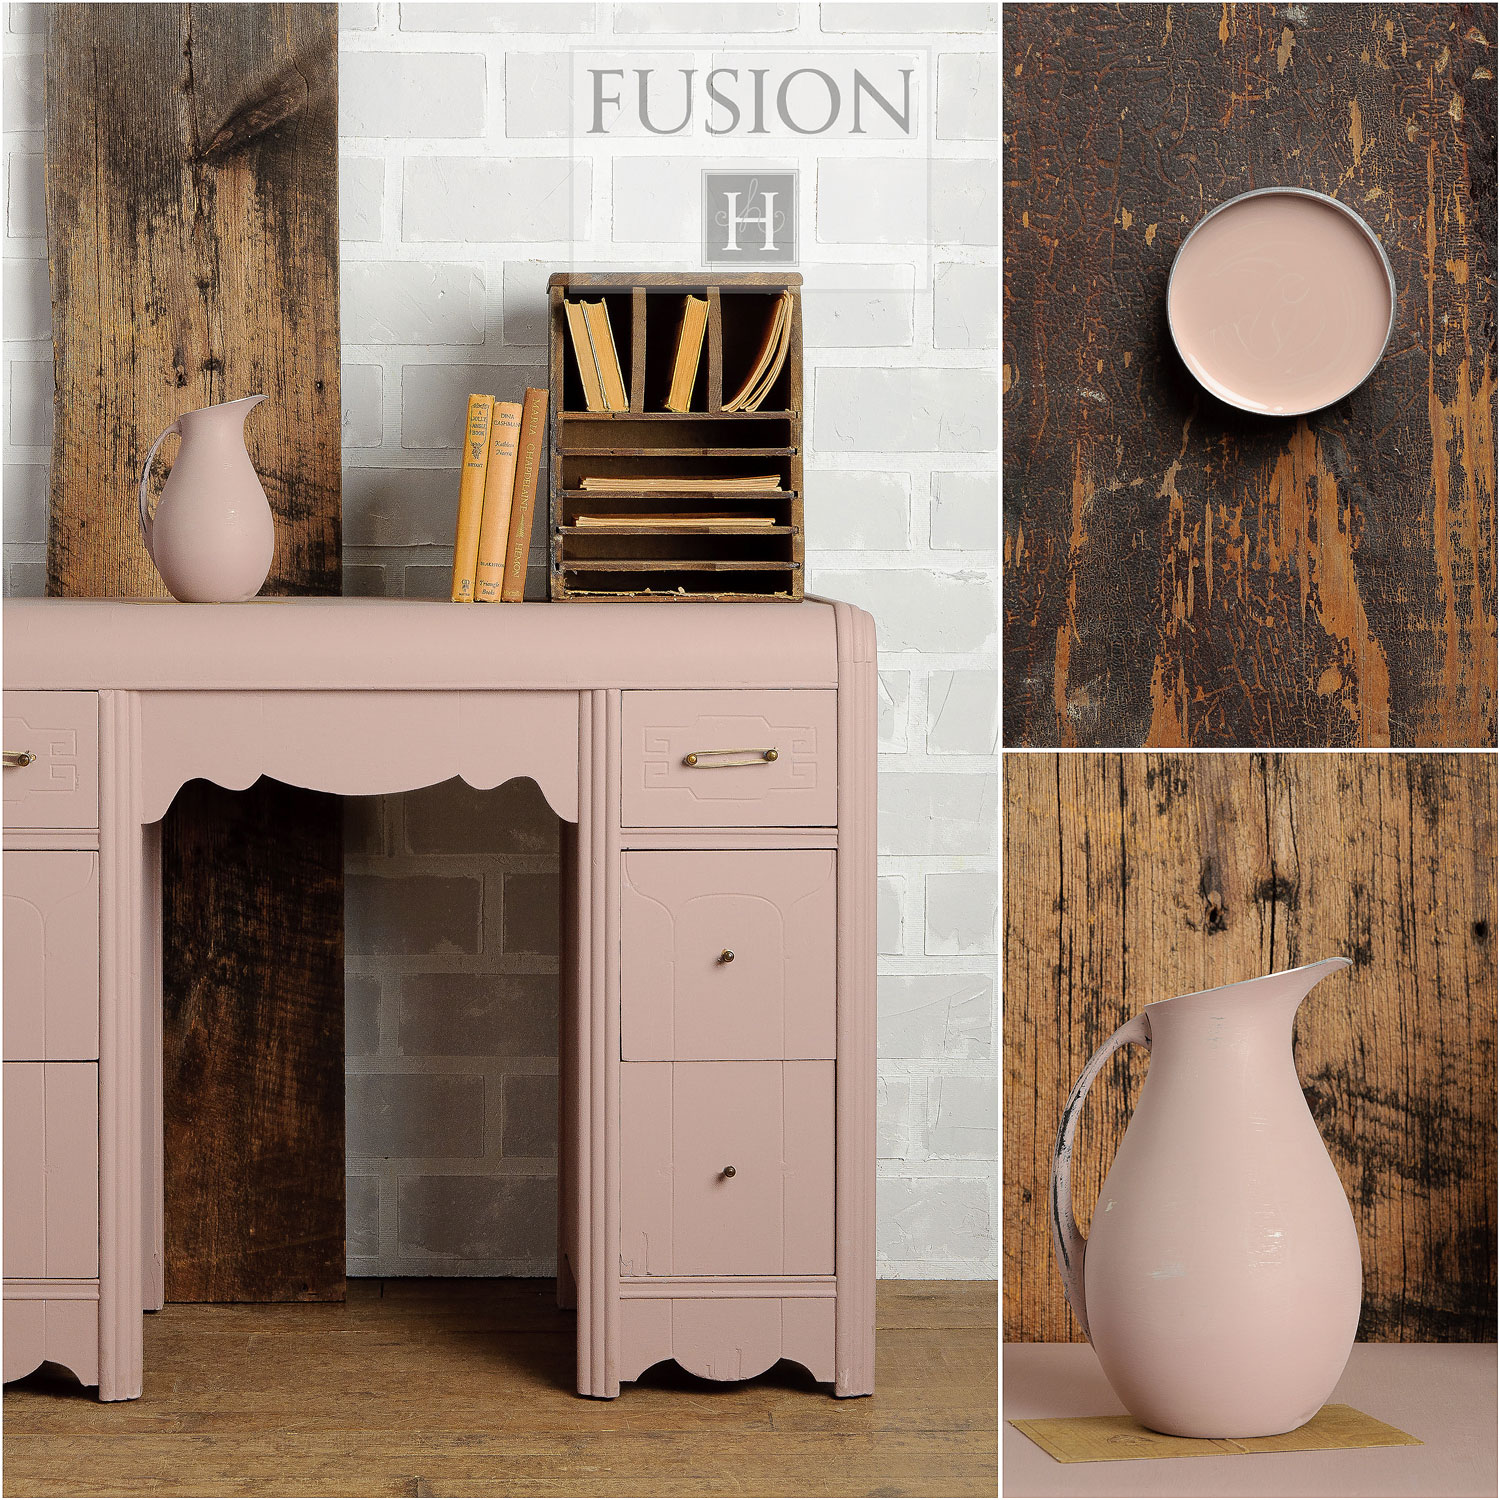 Fusion paint in damask - via My Painted Door (.com)